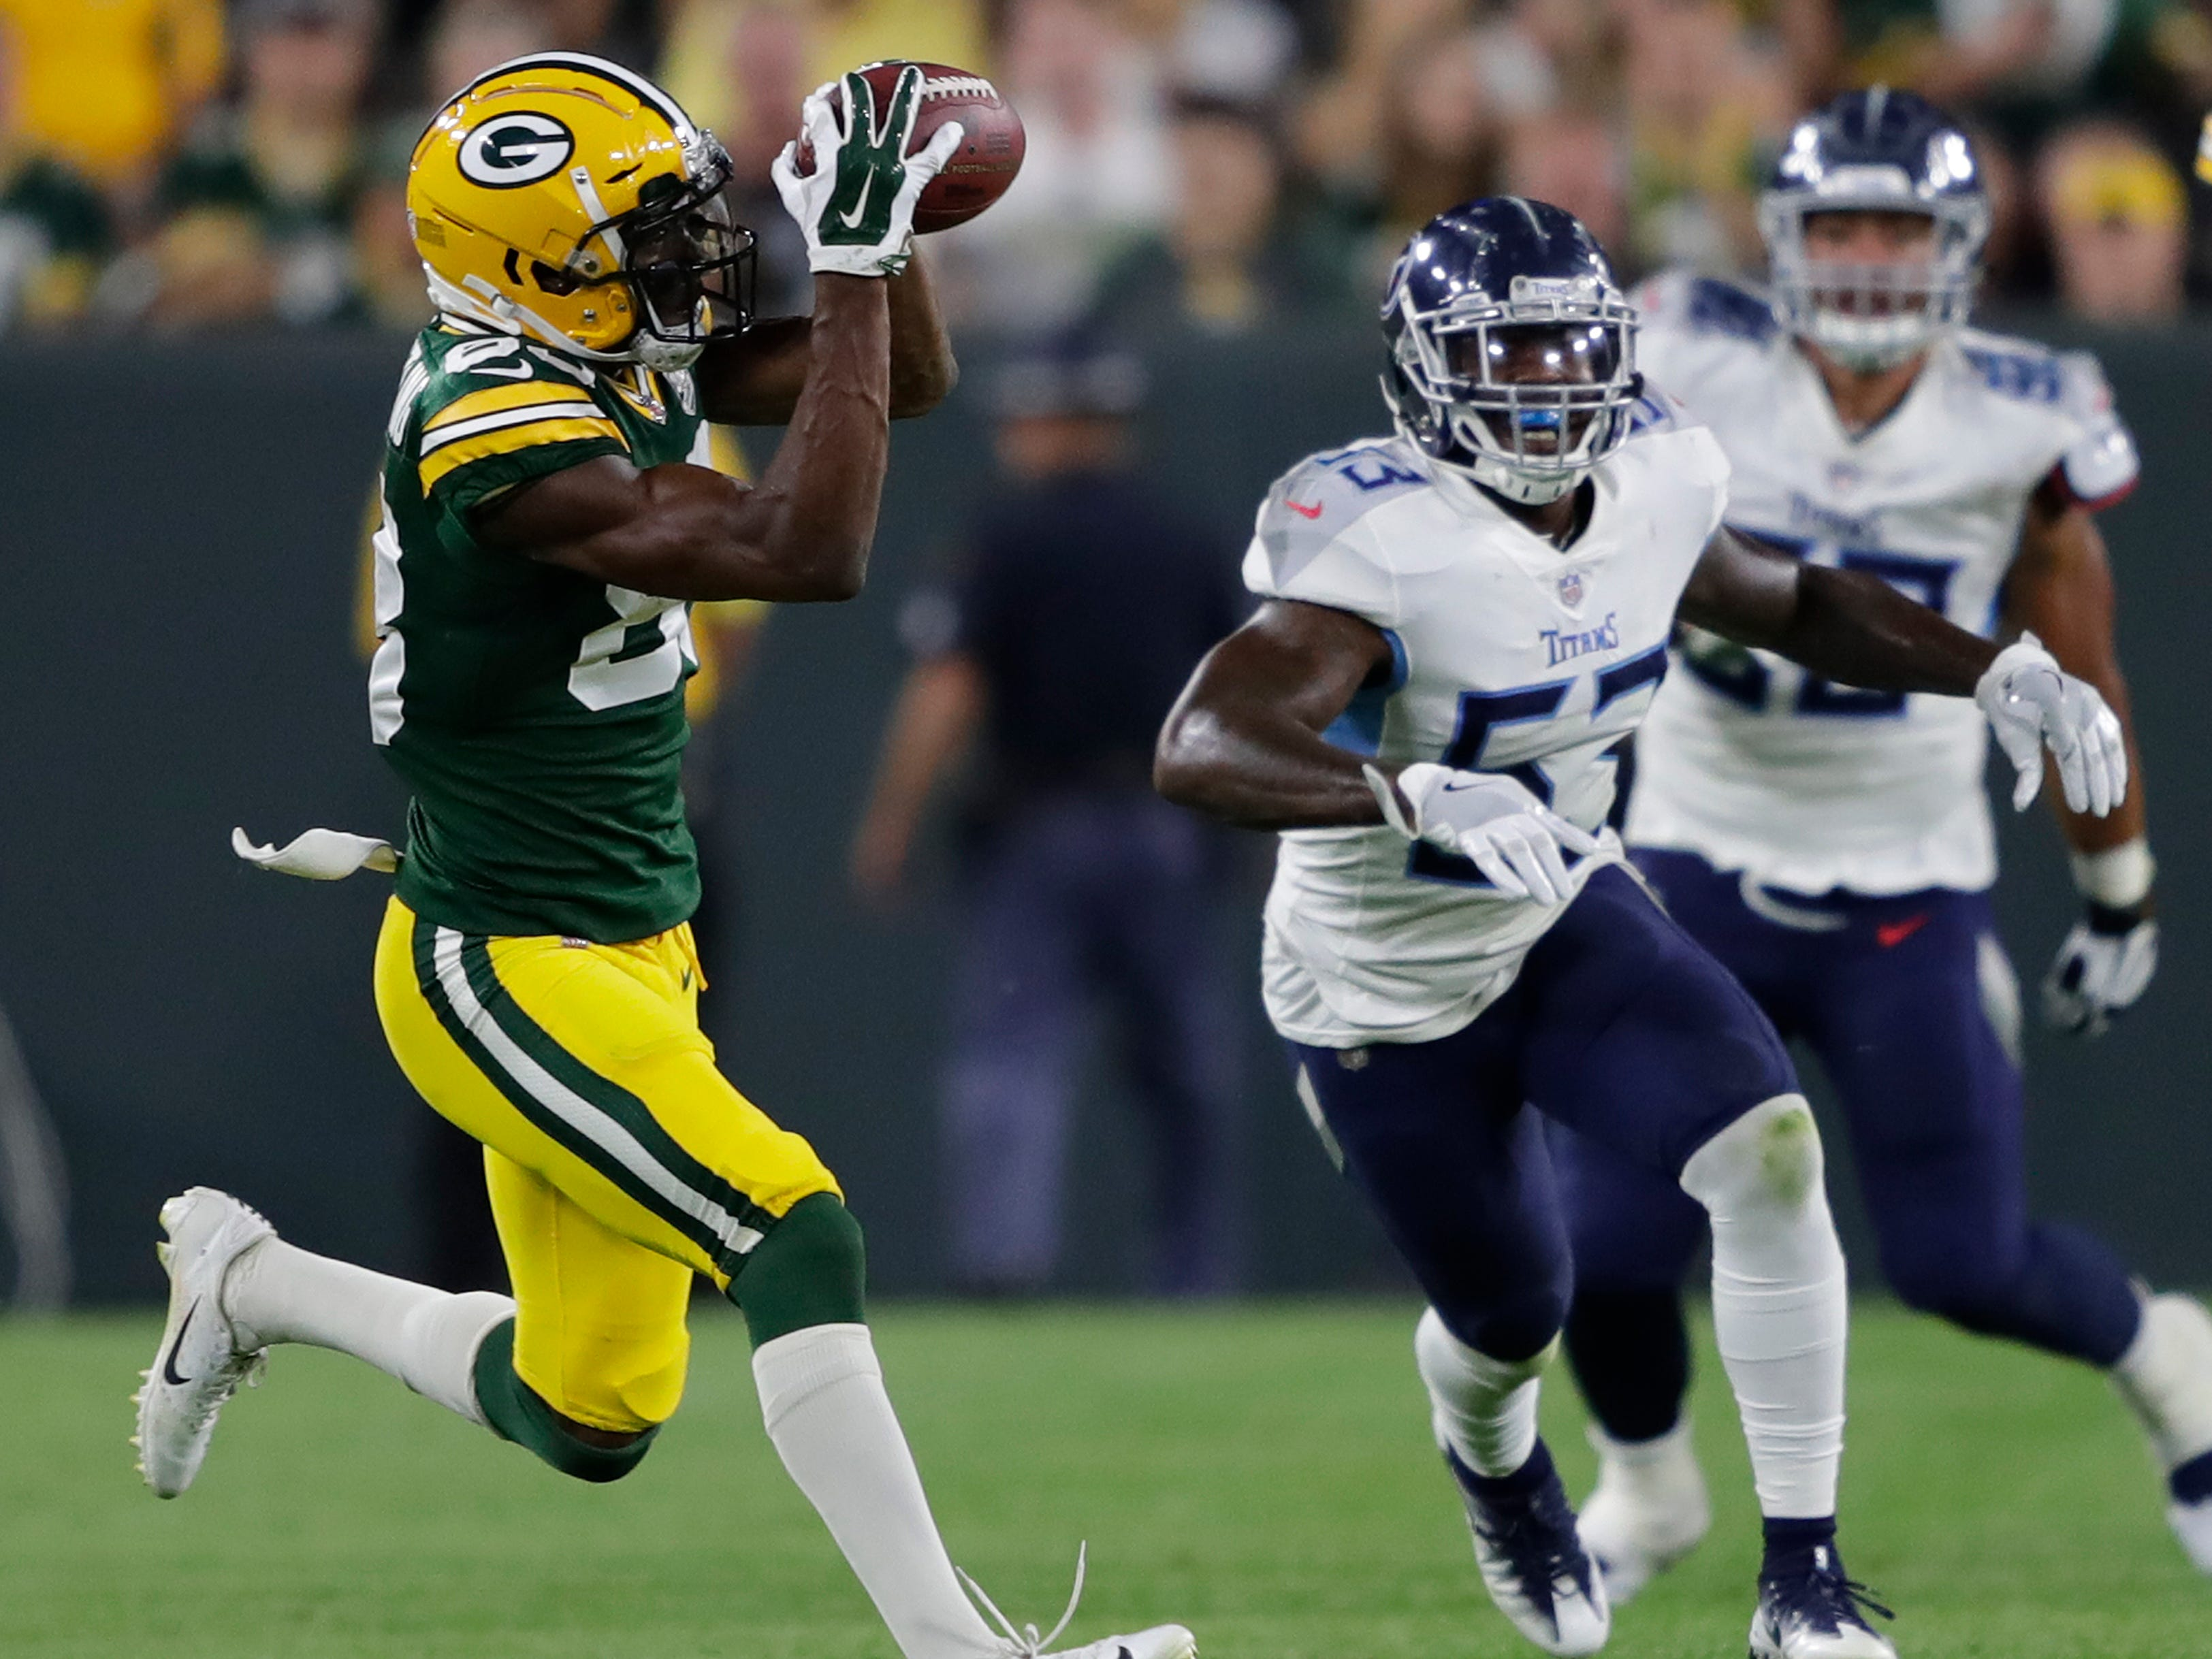 Green Bay Packers wide receiver Marquez Valdes-Scantling (83) pulls down a reception against the Tennessee Titans during their football game Thursday, August 9, 2018, at Lambeau Field in Green Bay, Wis.